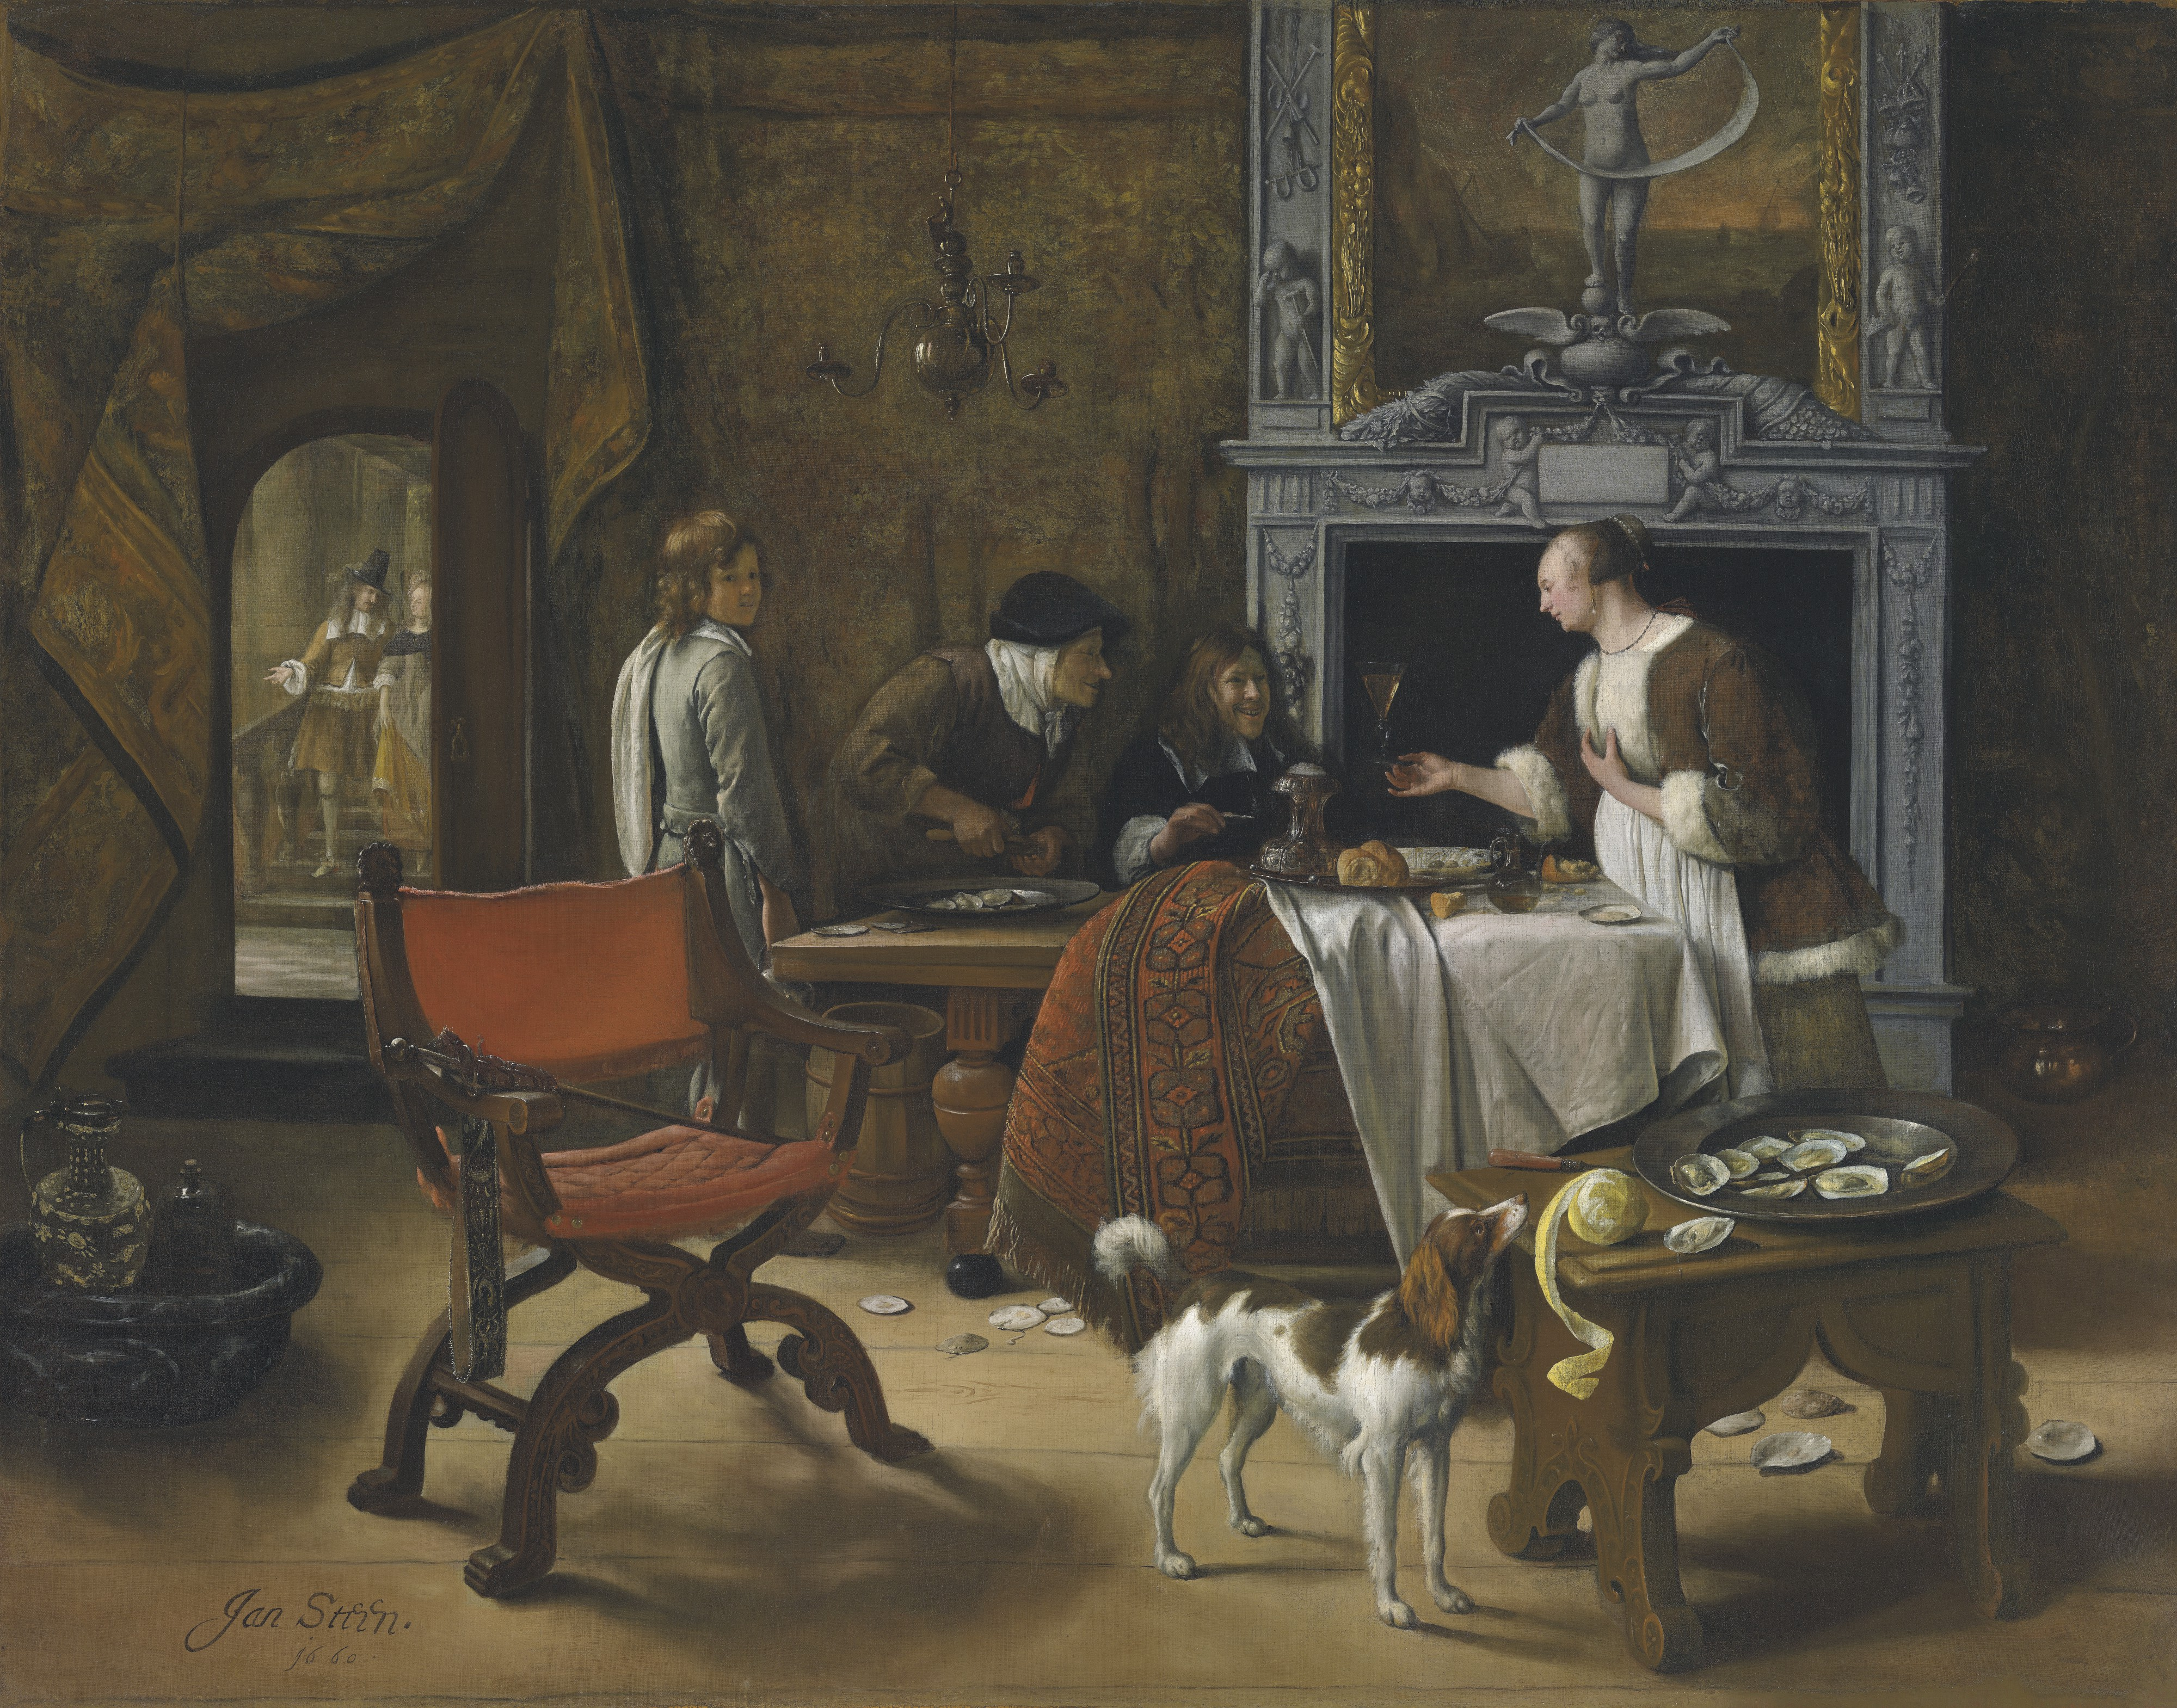 Jan Havicksz Steen - Easy Come, Easy Go: The Artist Eating Oysters In An Interior